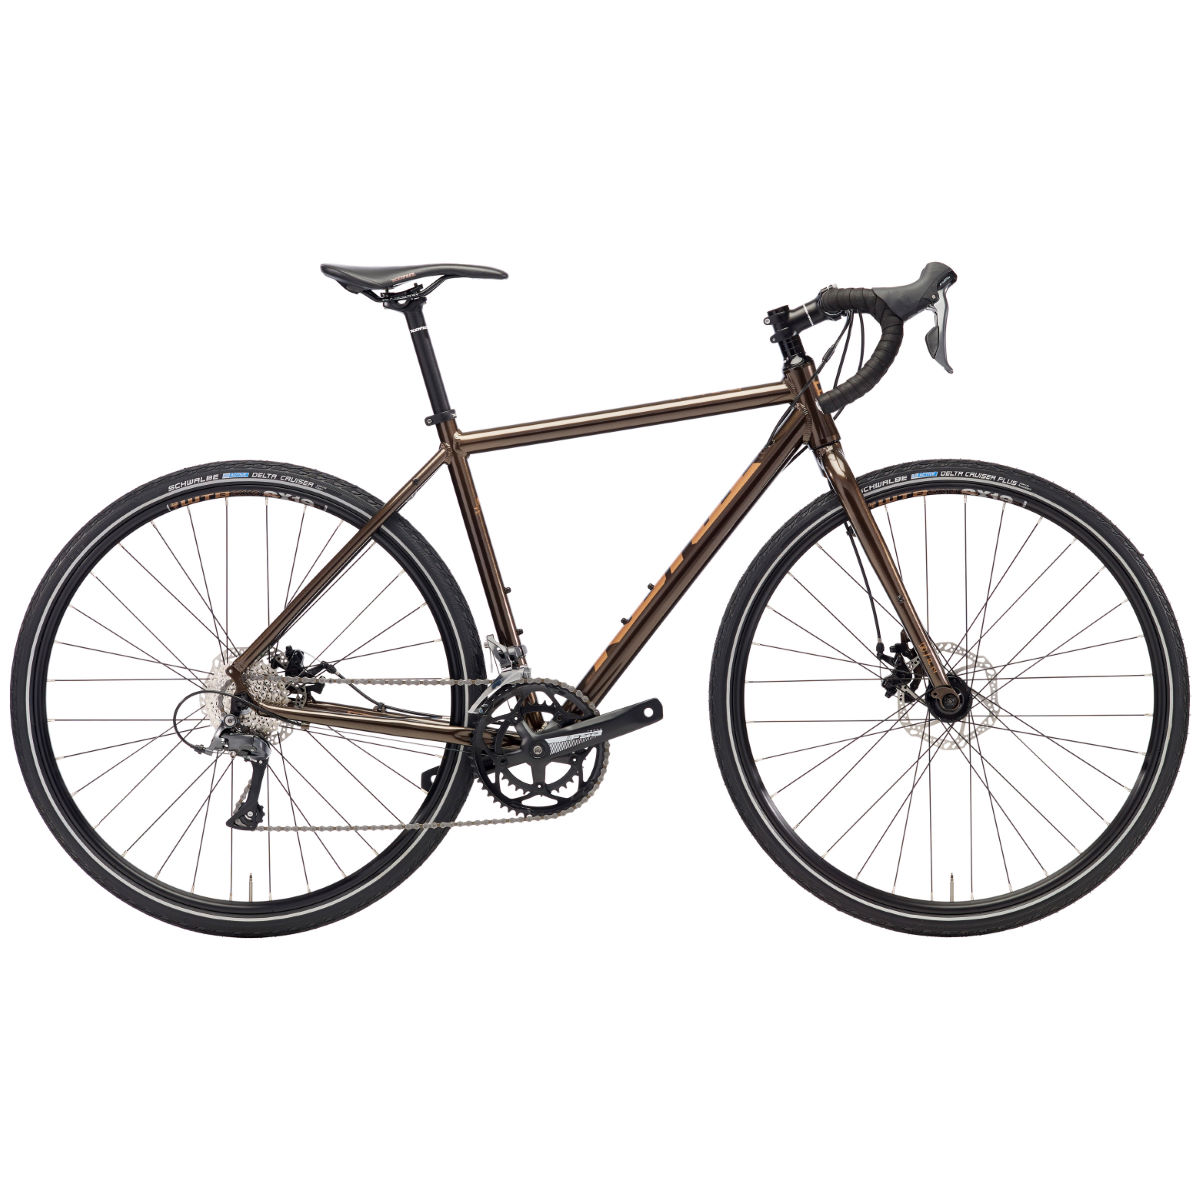 Vélo de route Kona Rove (2018) - 48cm Stock Bike Rust